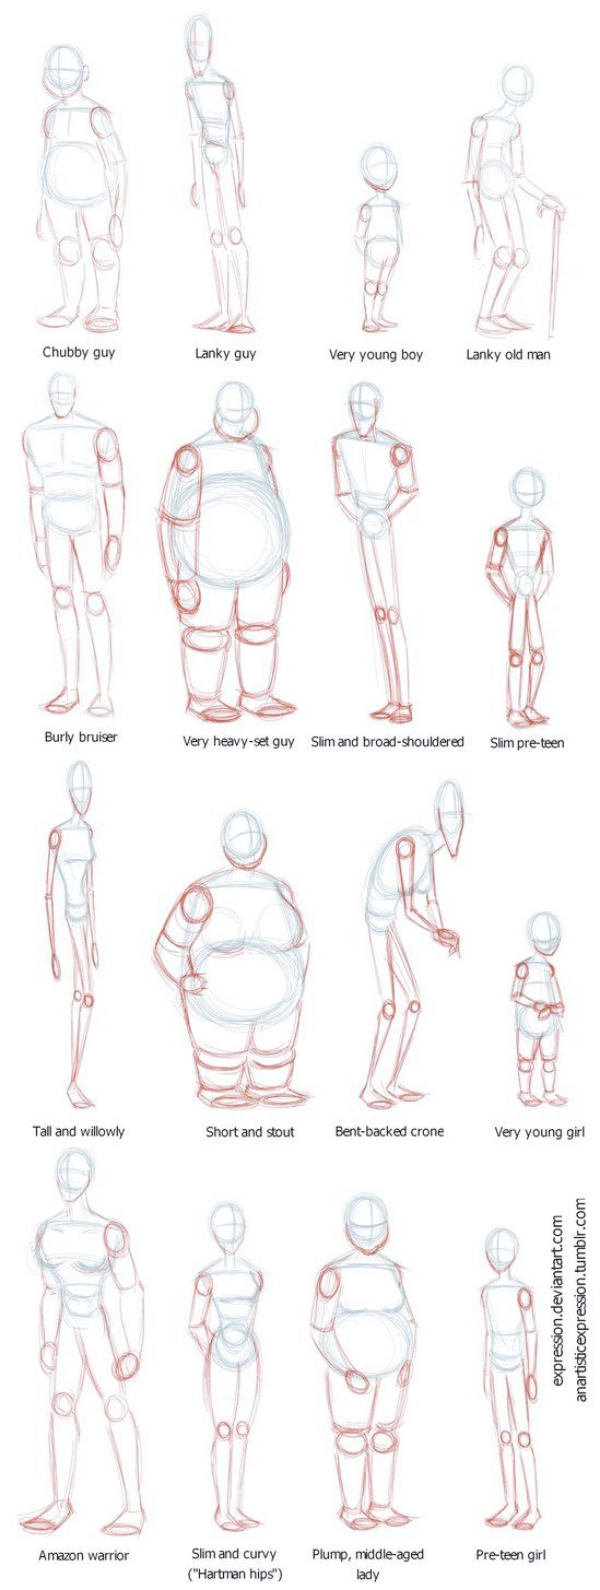 HOW TO DRAW BODY SHAPES: 30 Tutorials For Beginners - Bored Art